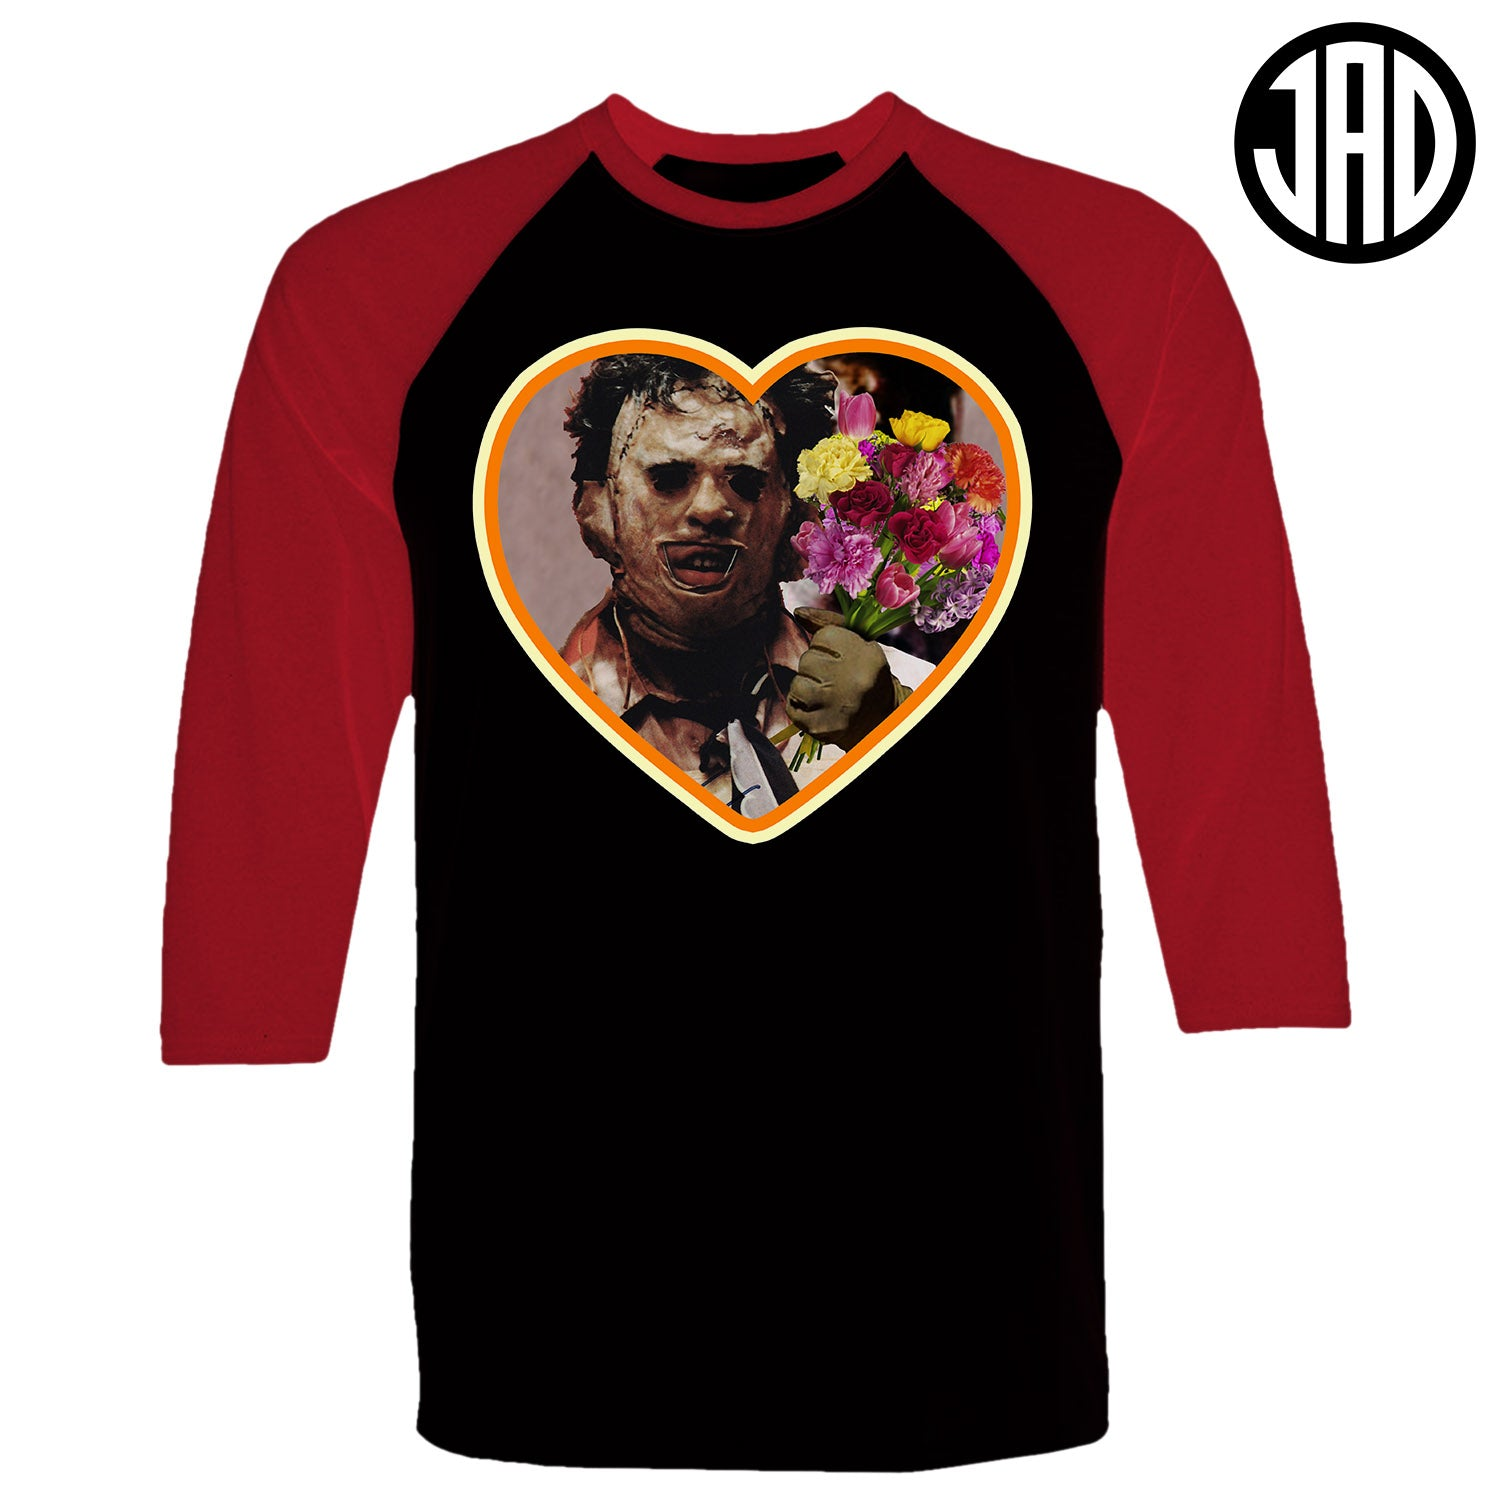 V Day Massacre - Men's Baseball Tee